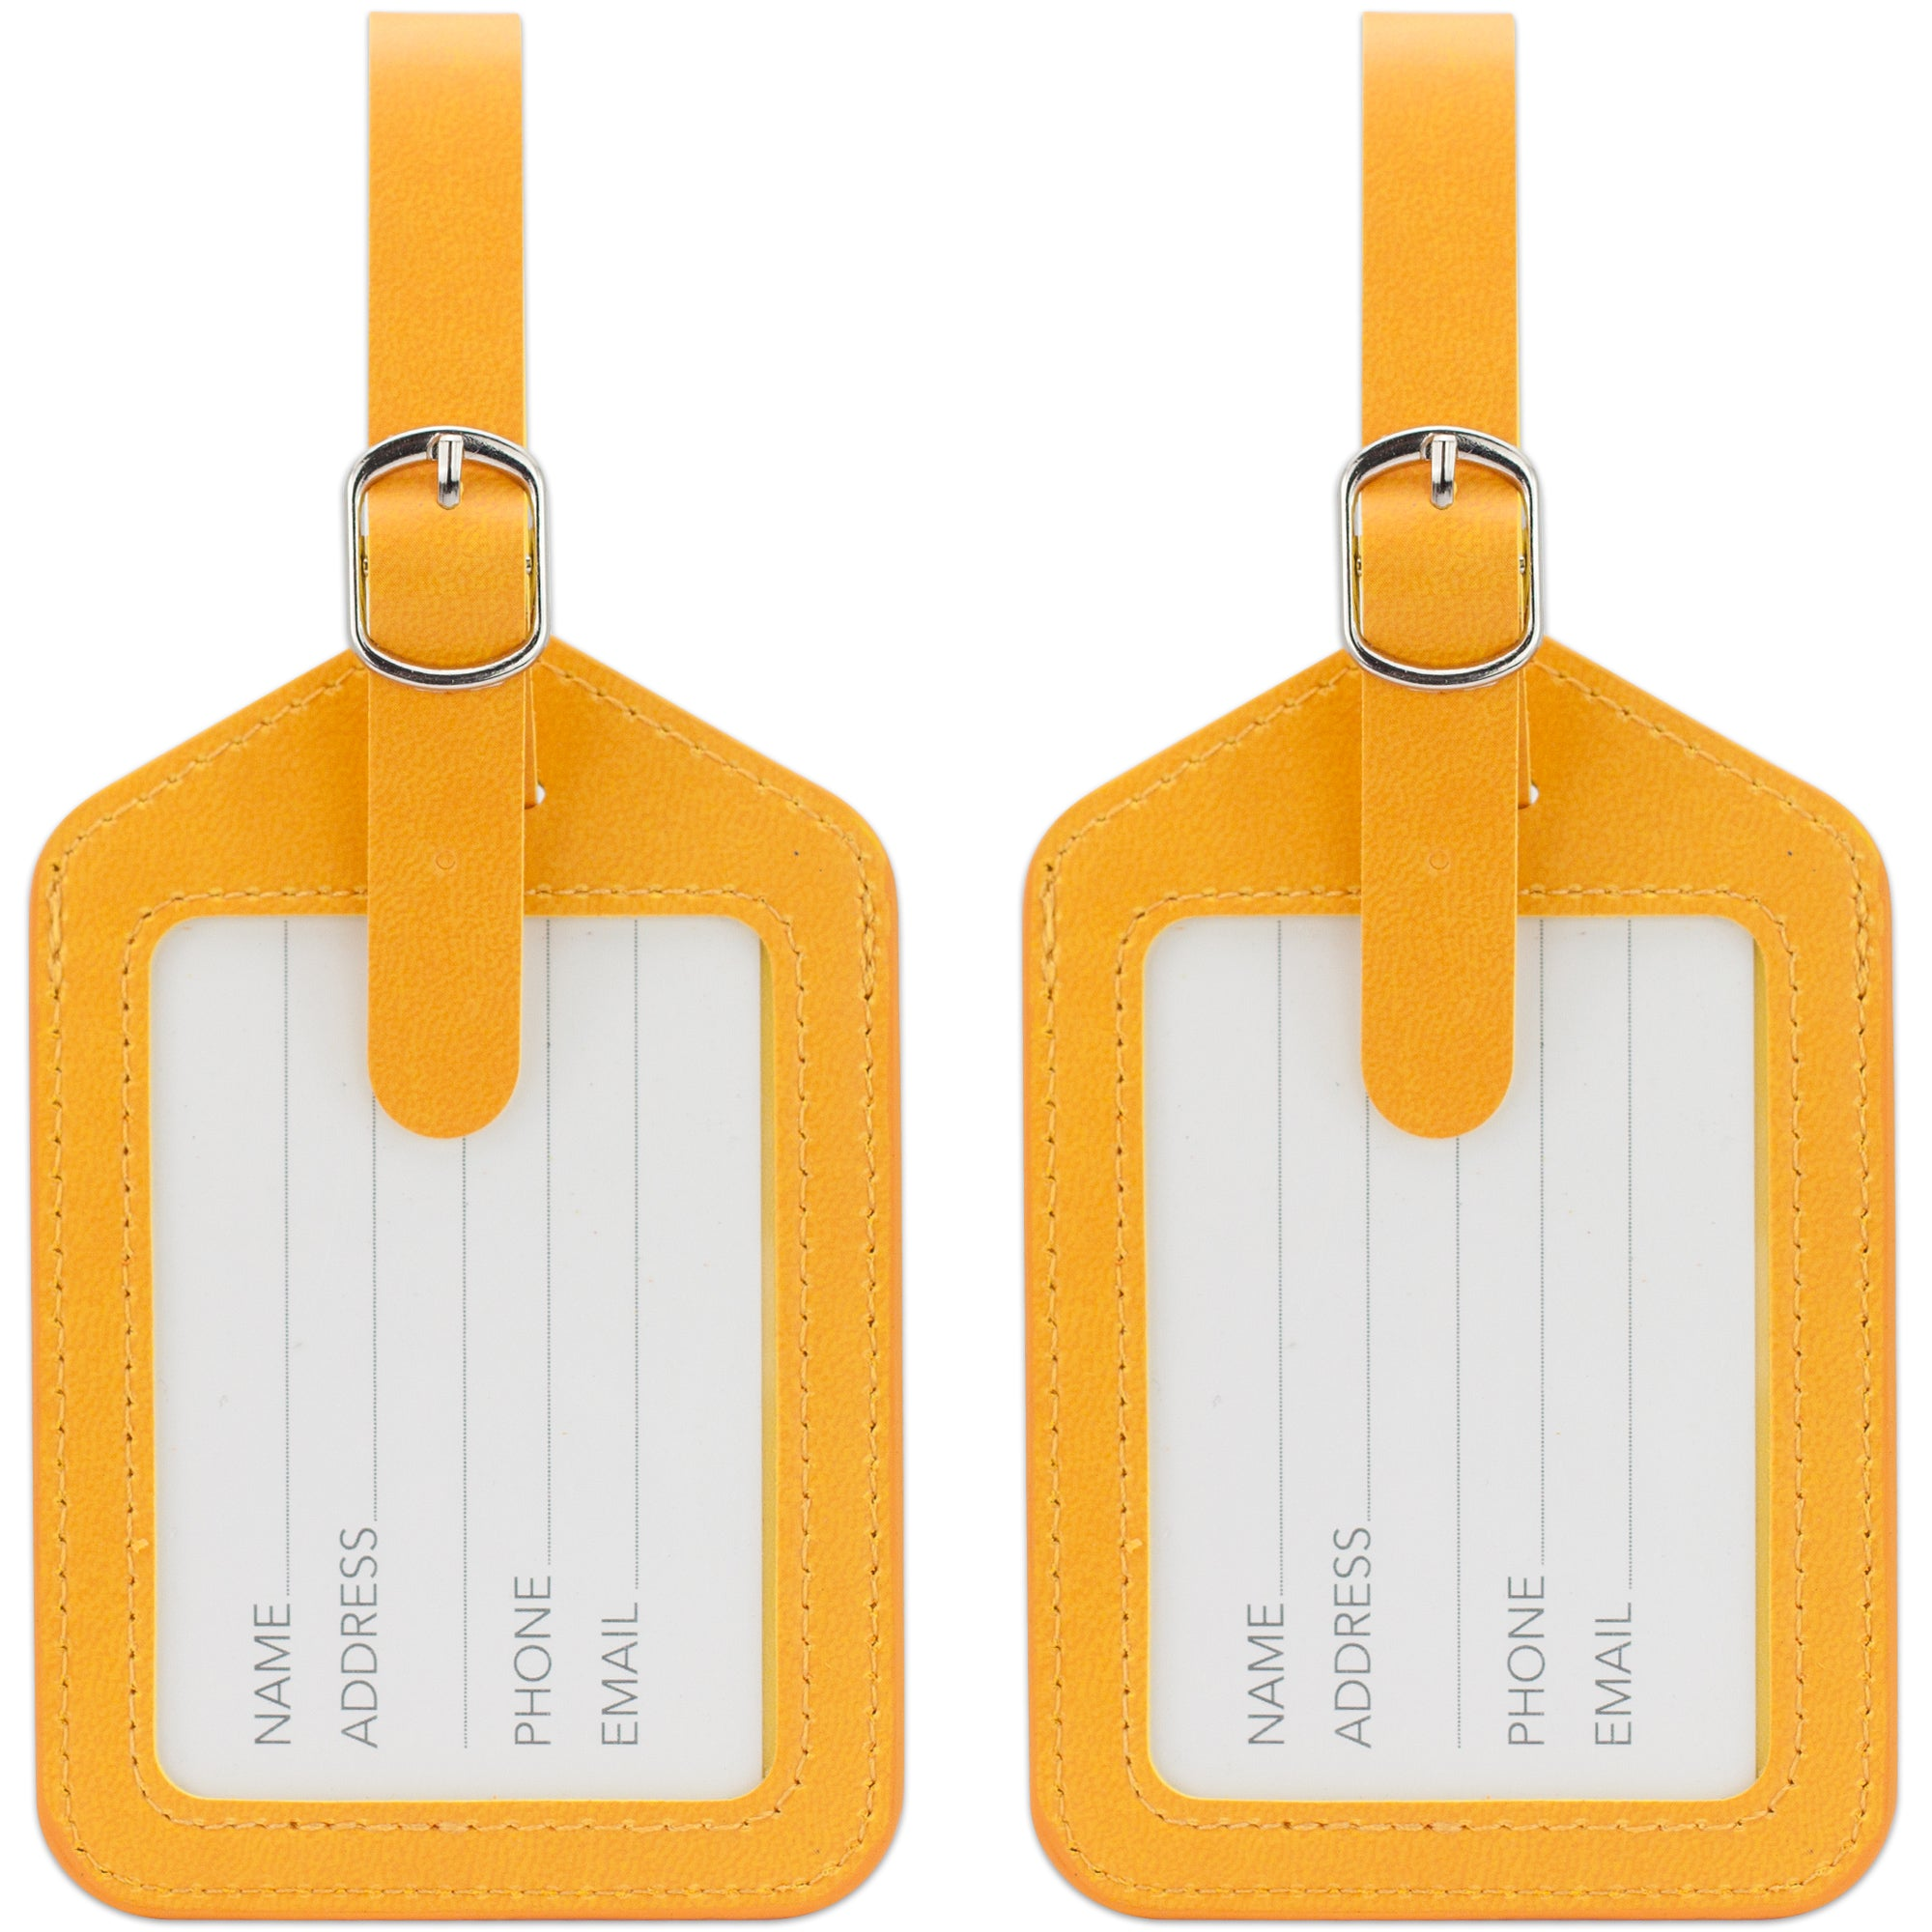 Elegance Luggage Tags Set of 2 - Orange - Travellty